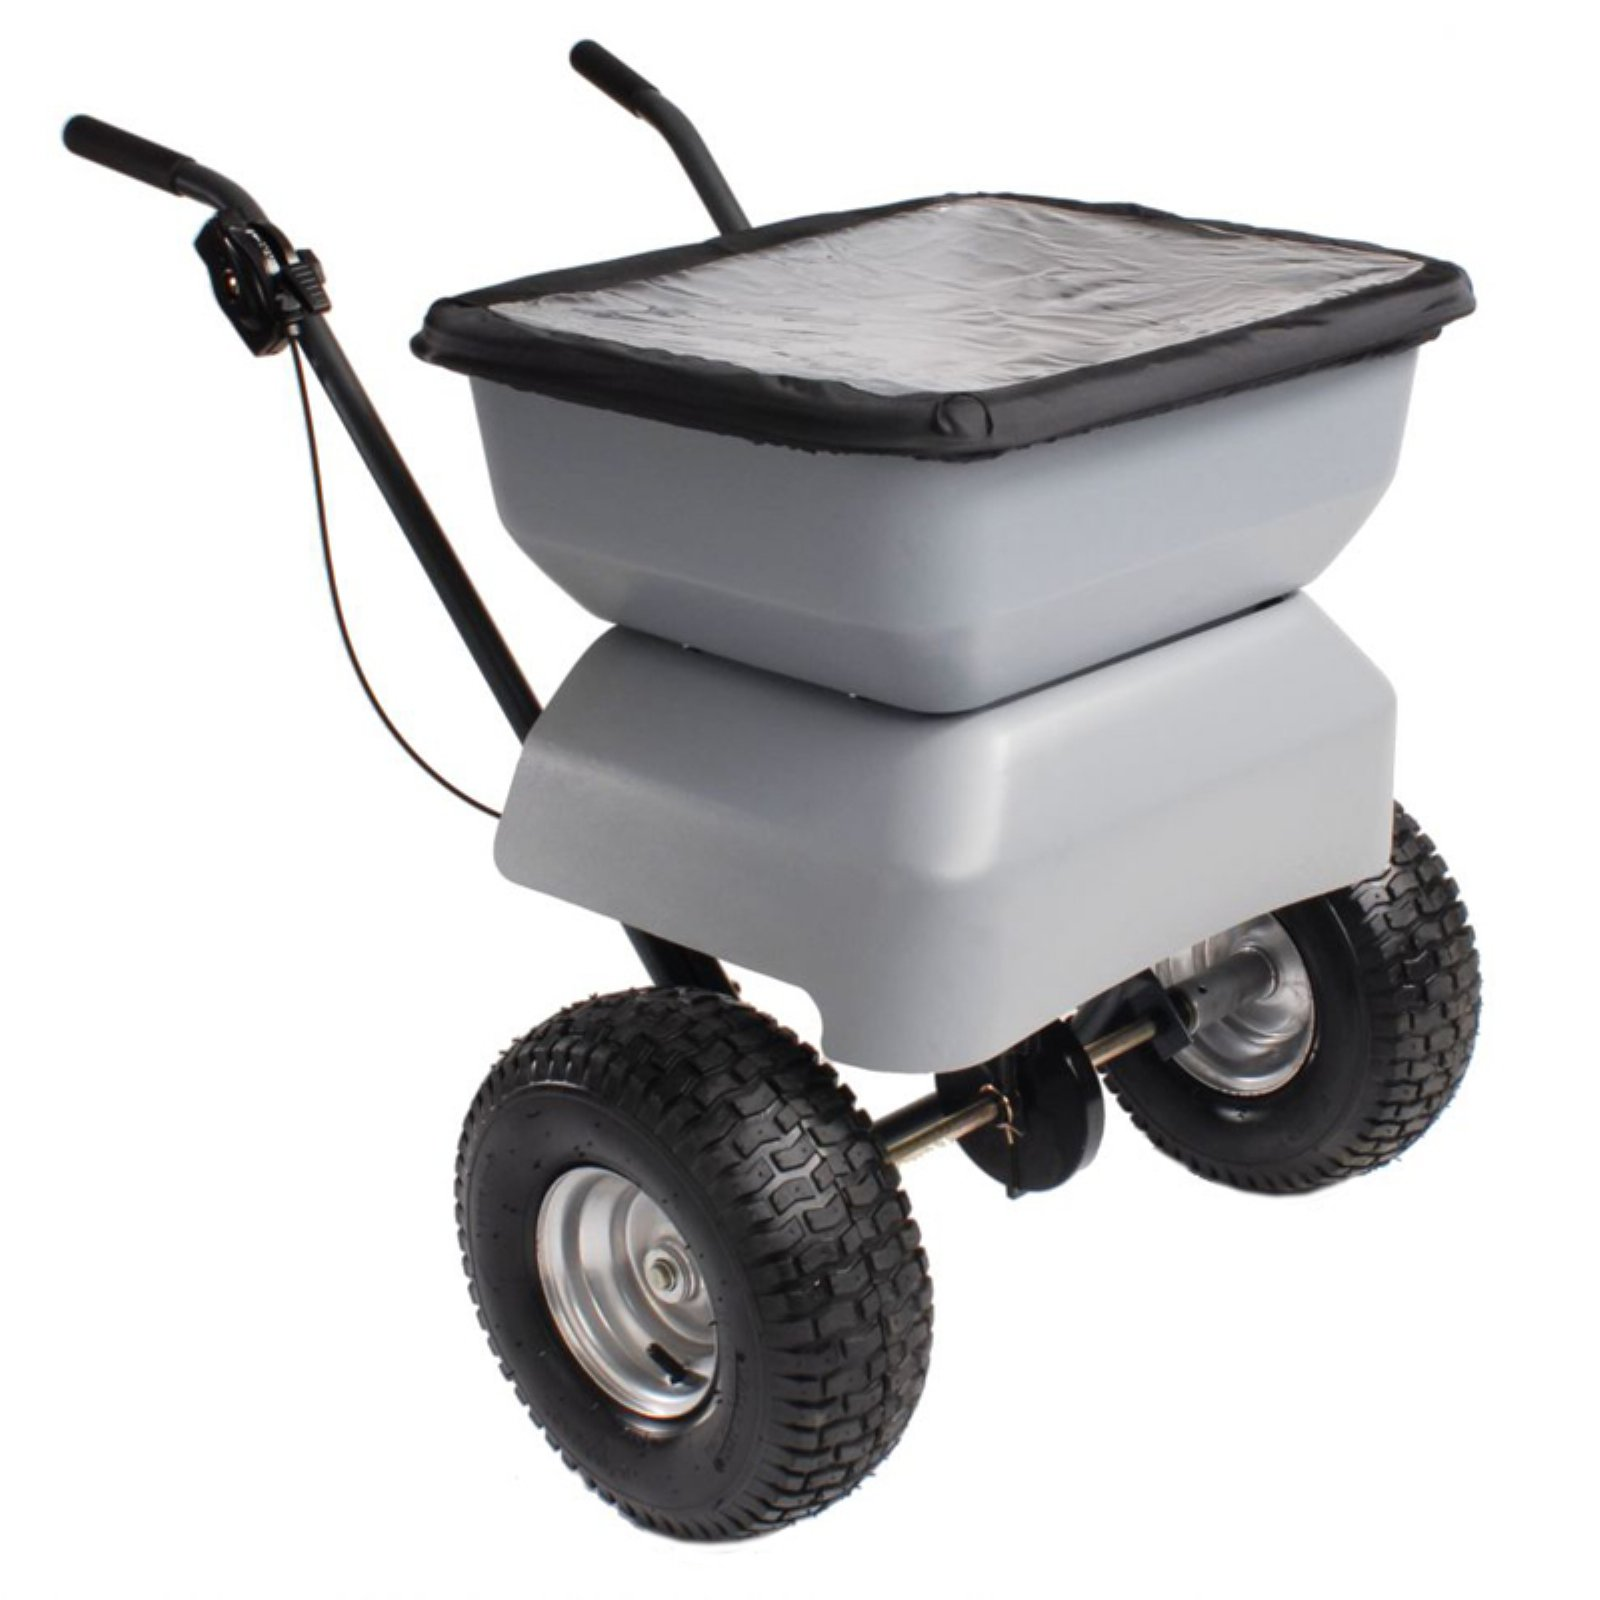 Precision Broadcast Salt Spreader with Rain Cover by LIVEDITOR LIGHTING